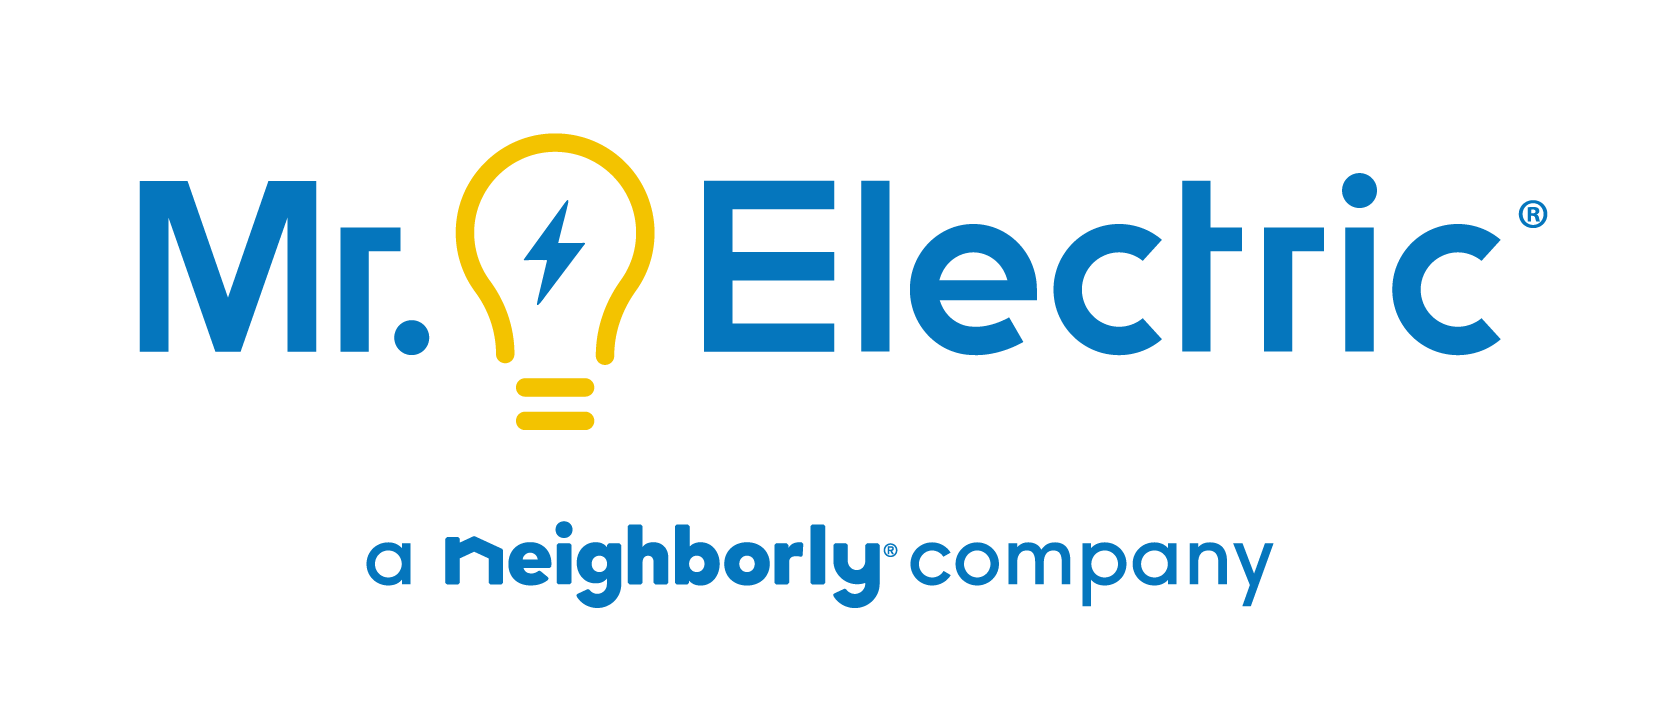 Mr. Electric of Cary, NC